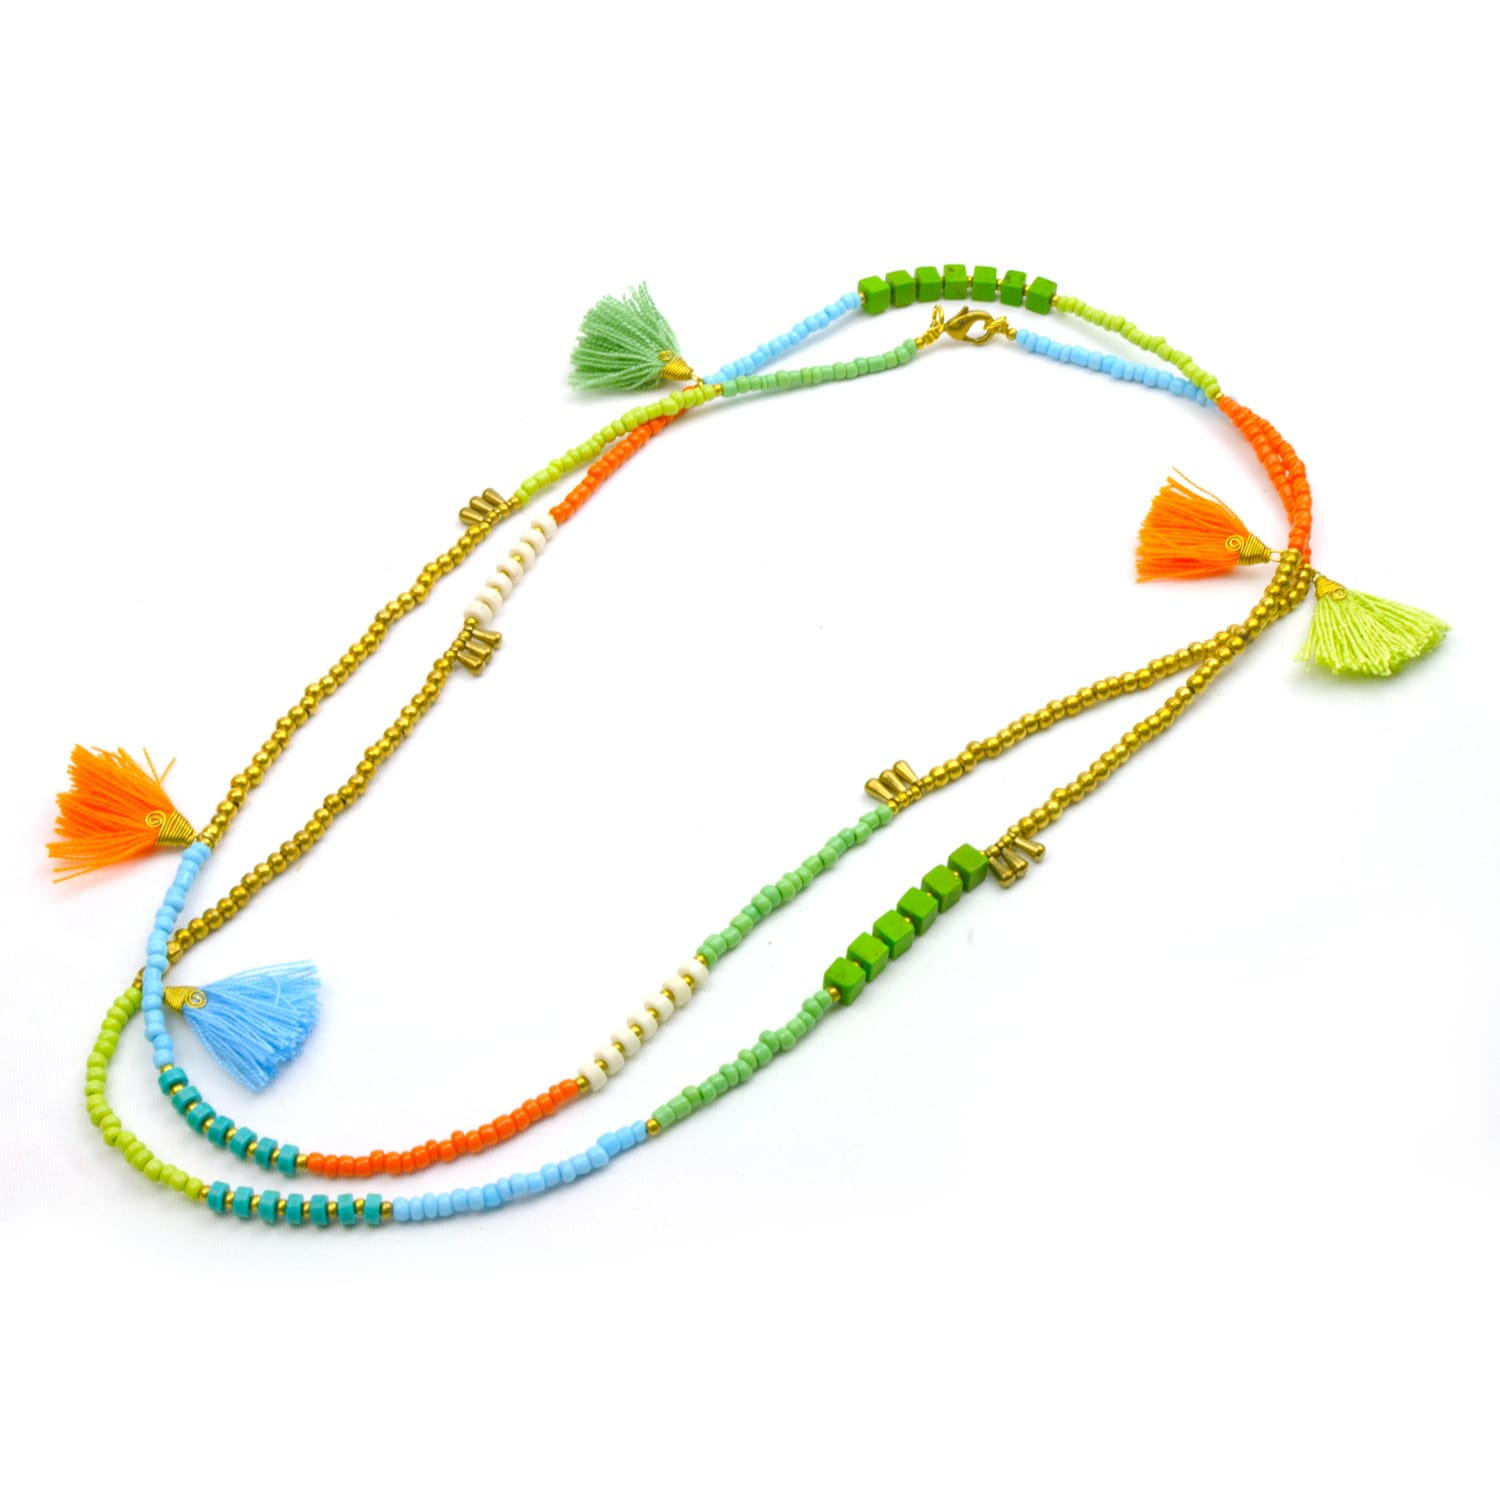 Global Crafts Handmade Island Kerala 3-in-1 Necklace - Gl...